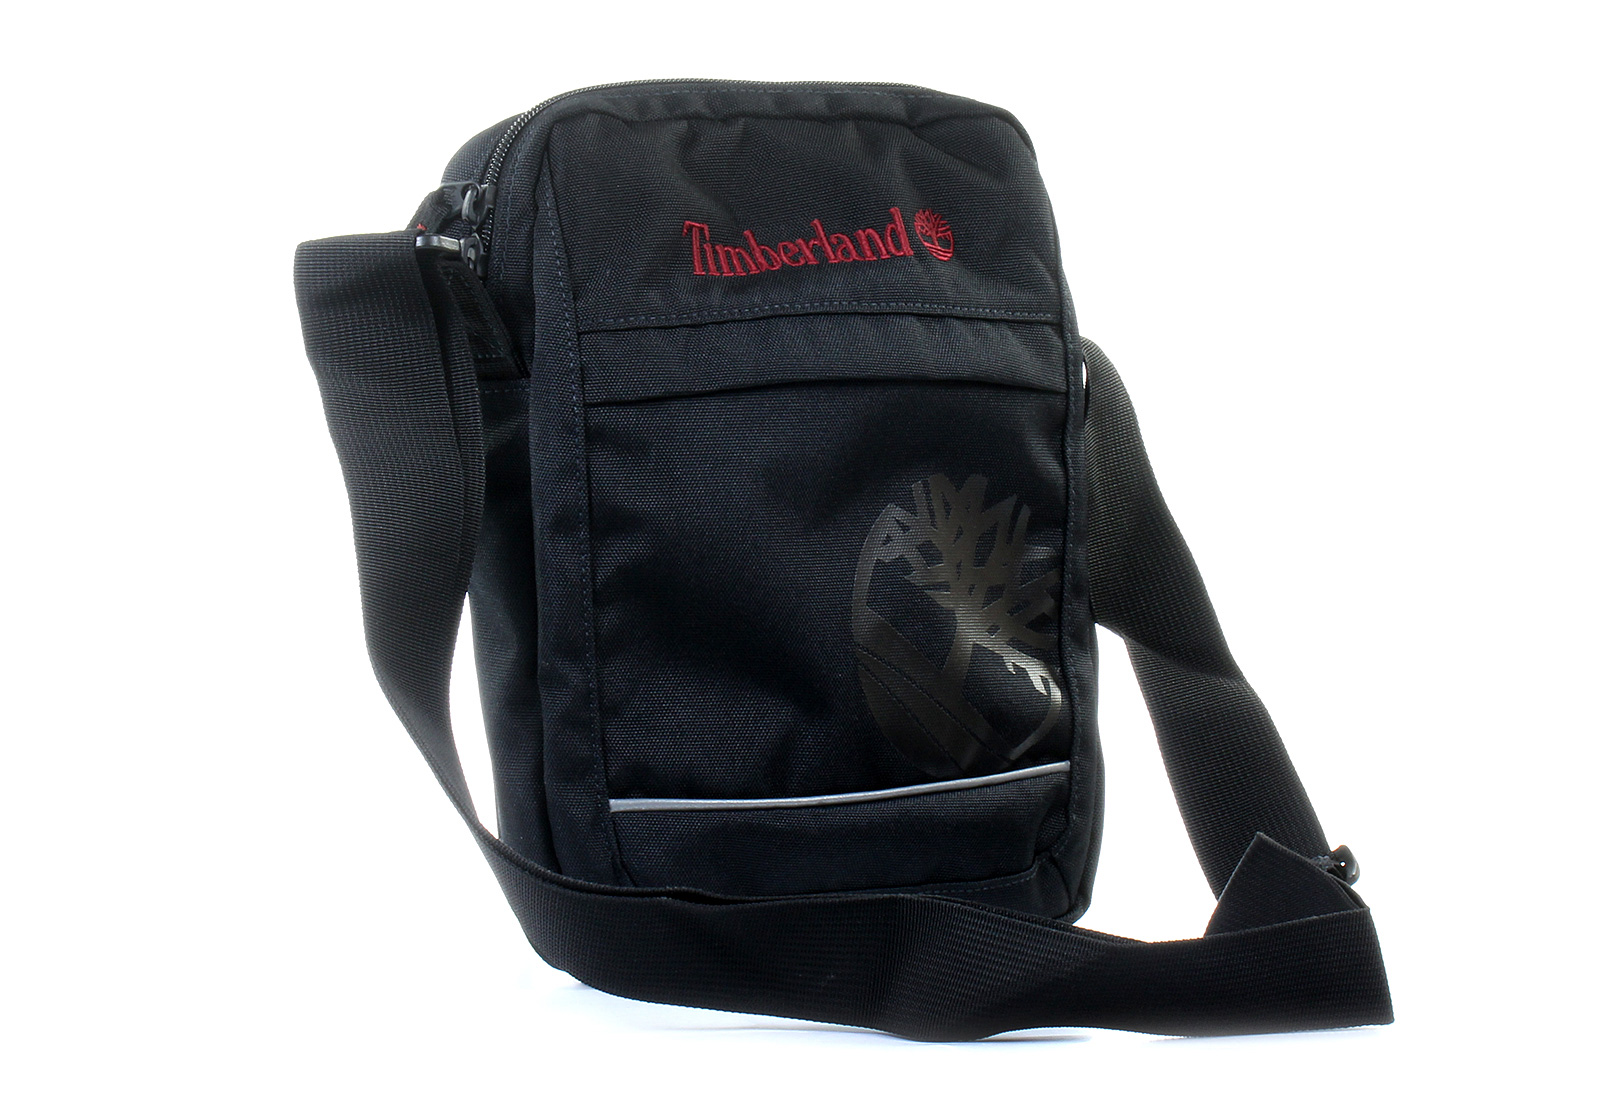 dcfac06e6c61 Timberland - Small Items Bag Black - J0836-001 - Online shop for ...